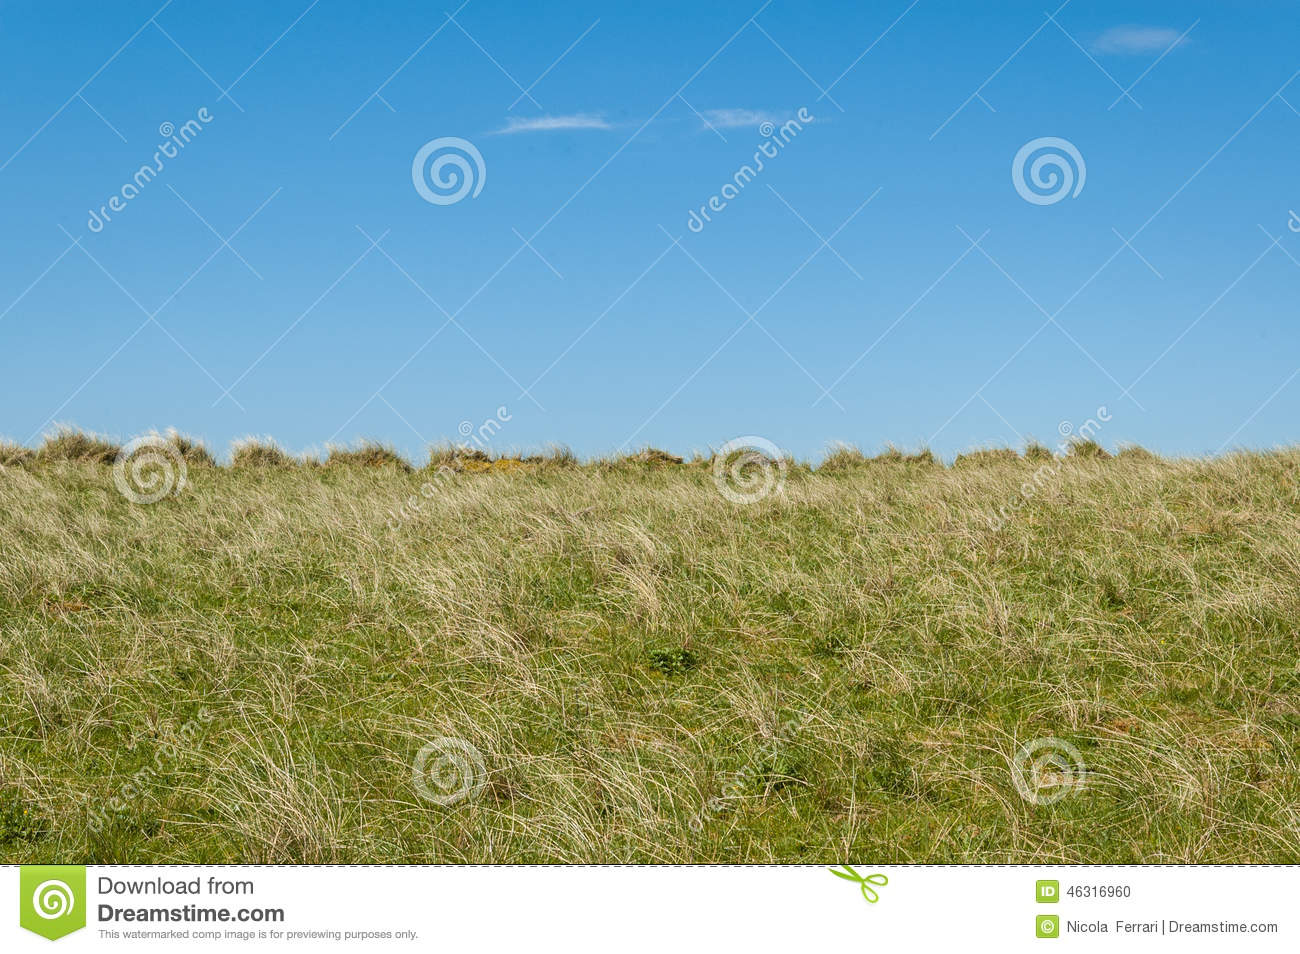 Empty long grass field with blue sky in the background.